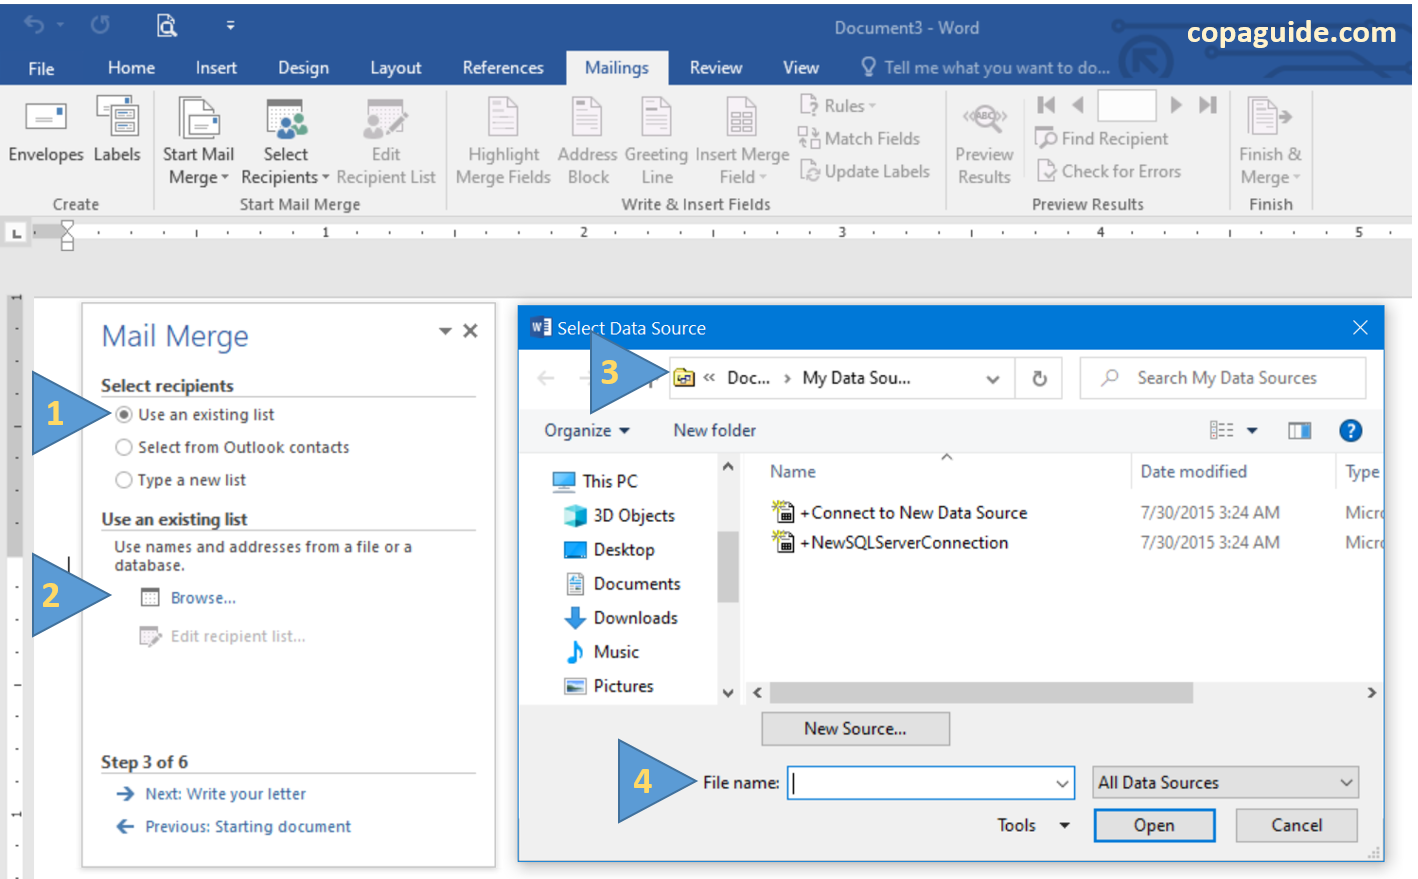 Mail Merge Wizard Use an existing list in MS-Word Hindi Notes